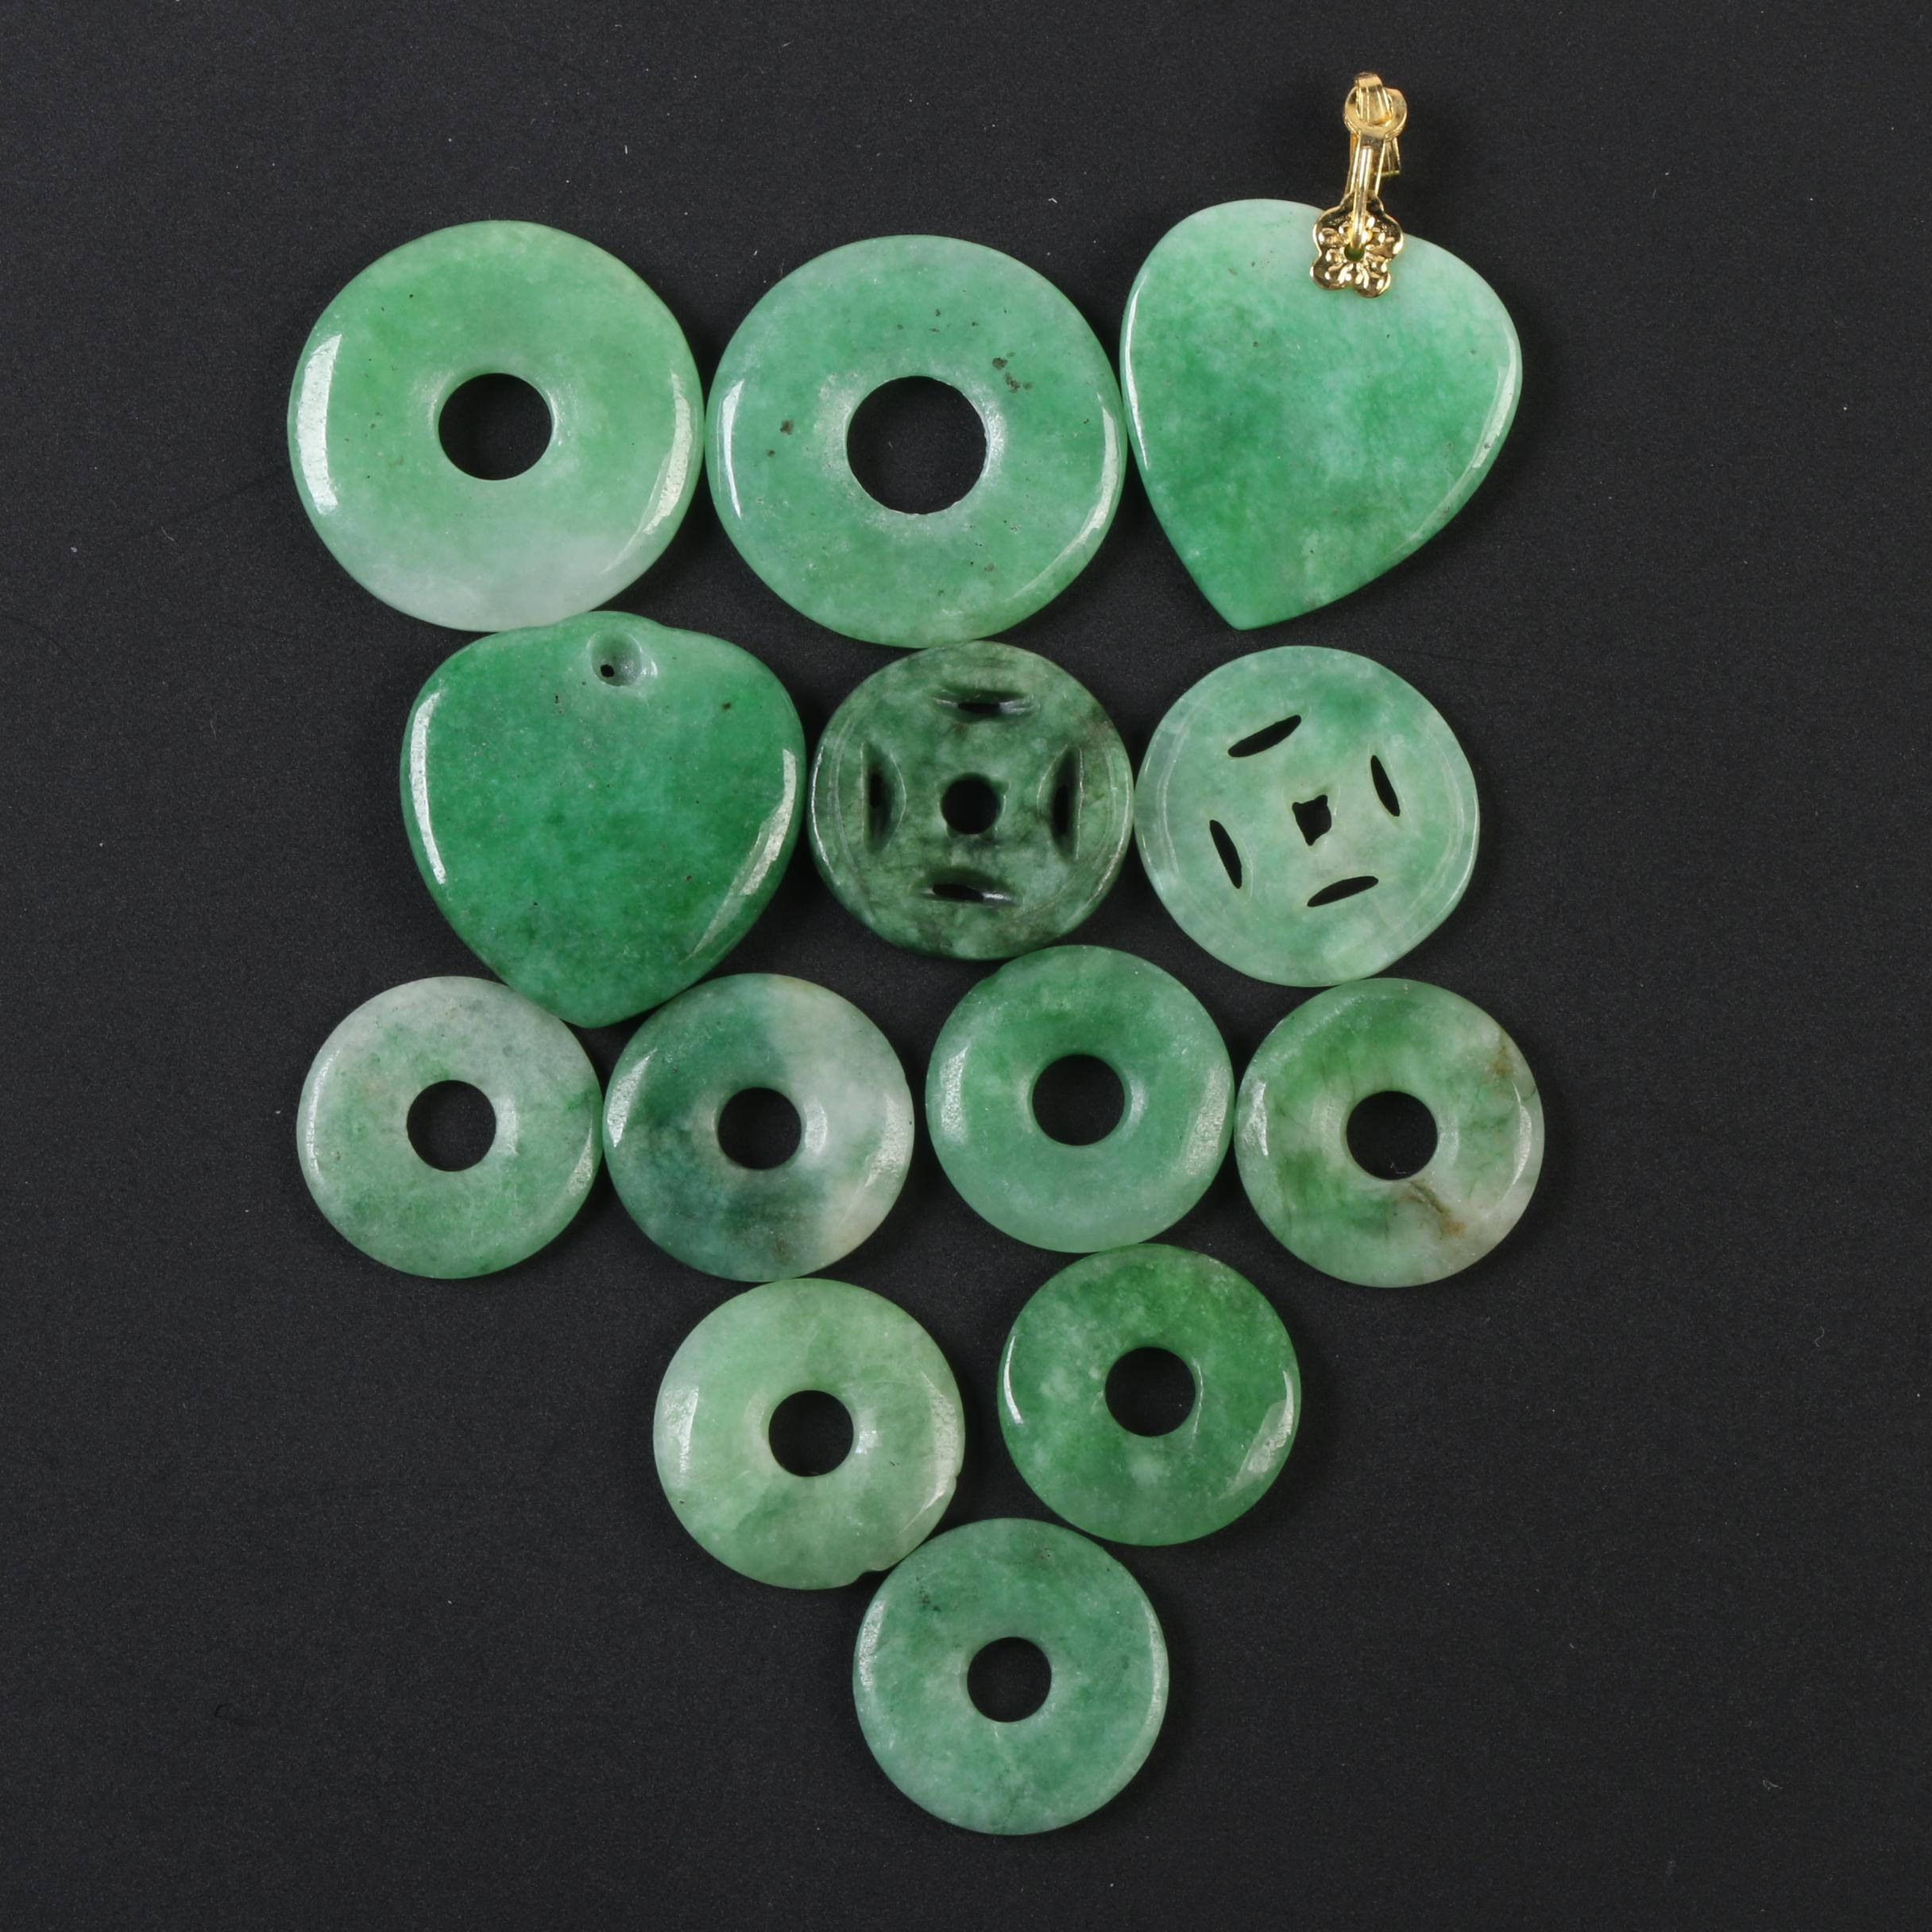 Gold Tone Metal and Dyed Jadeite Pendants and Bi Discs